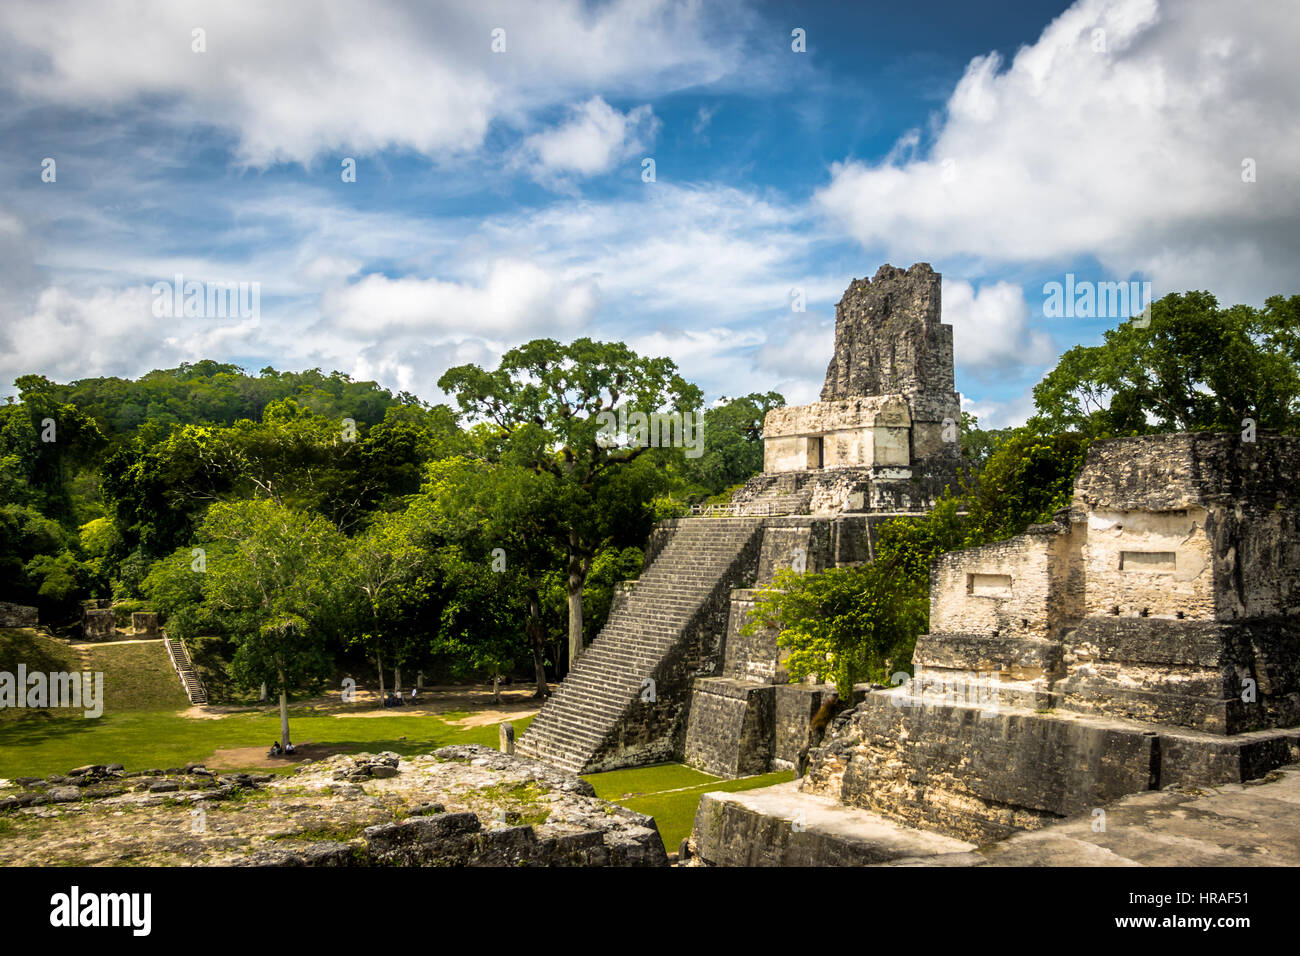 Mayan Temple II at Tikal National Park - Guatemala - Stock Image